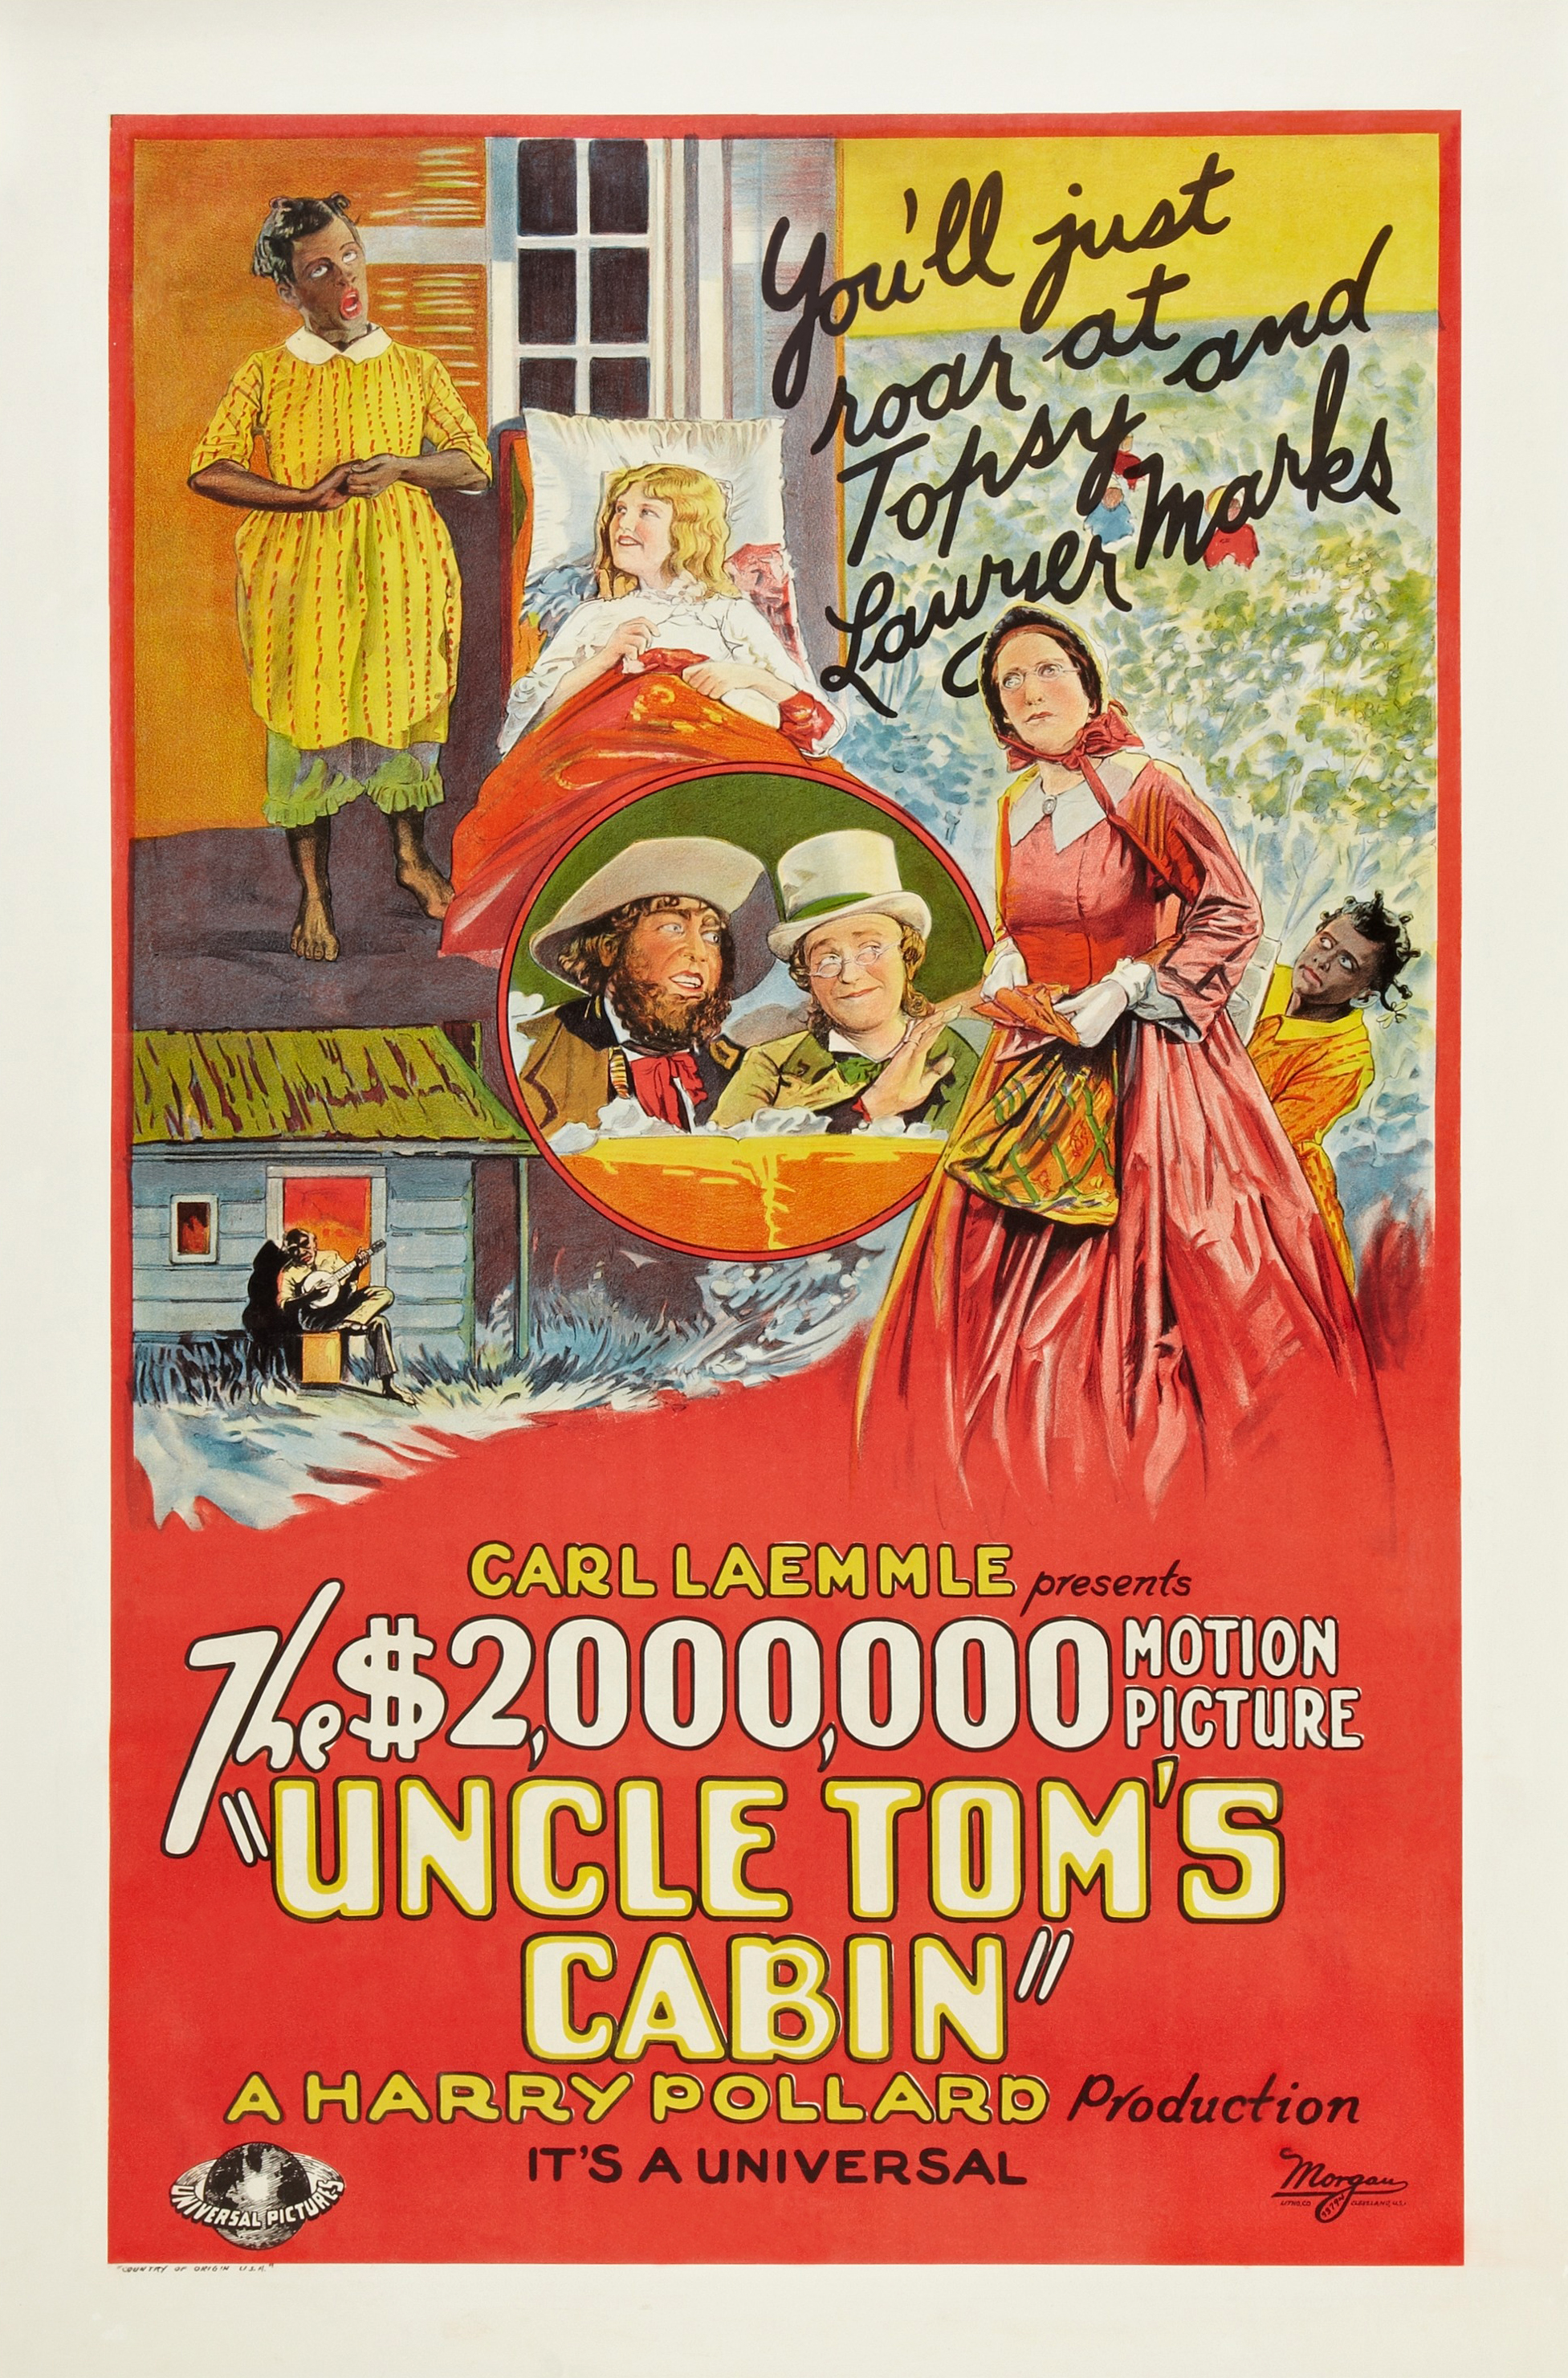 uncle toms cabin Uncle tom's cabin was not the first antislavery novel, but it was by far the most successful the novel sold 10,000 copies in the first week and 300,000 by the end of the first year the novel sold 10,000 copies in the first week and 300,000 by the end of the first year.